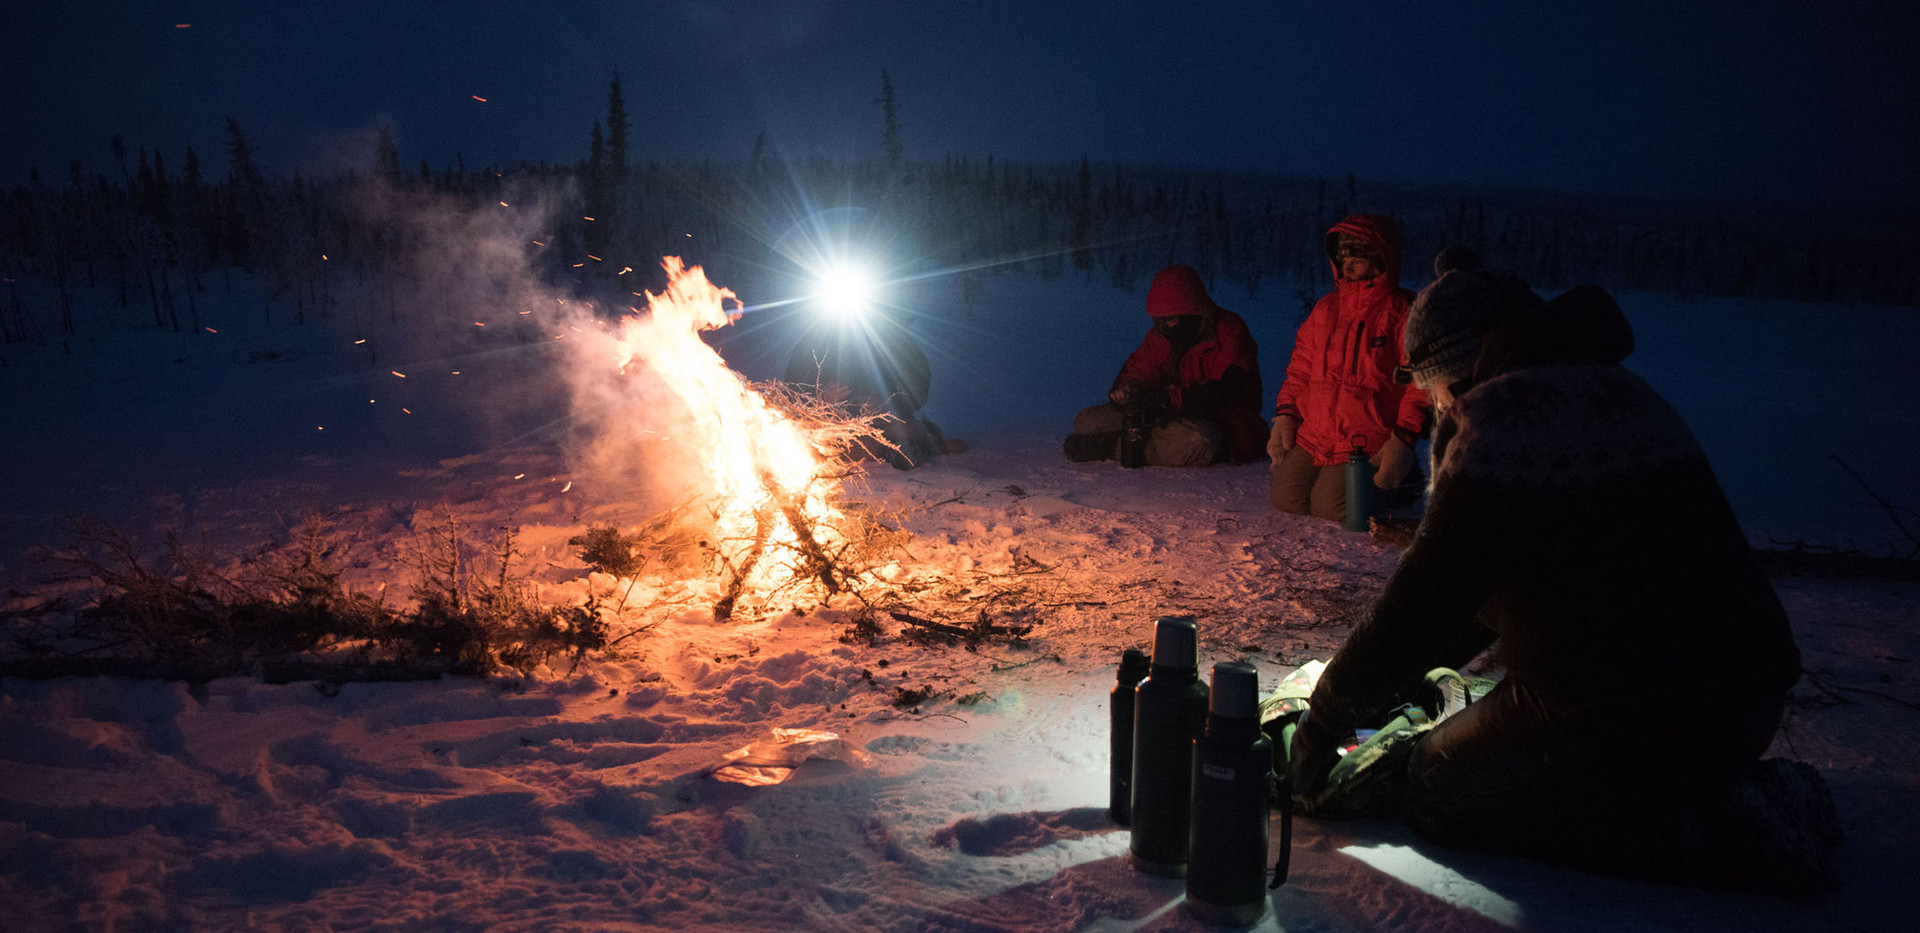 Preparing hot drinks by the fire.